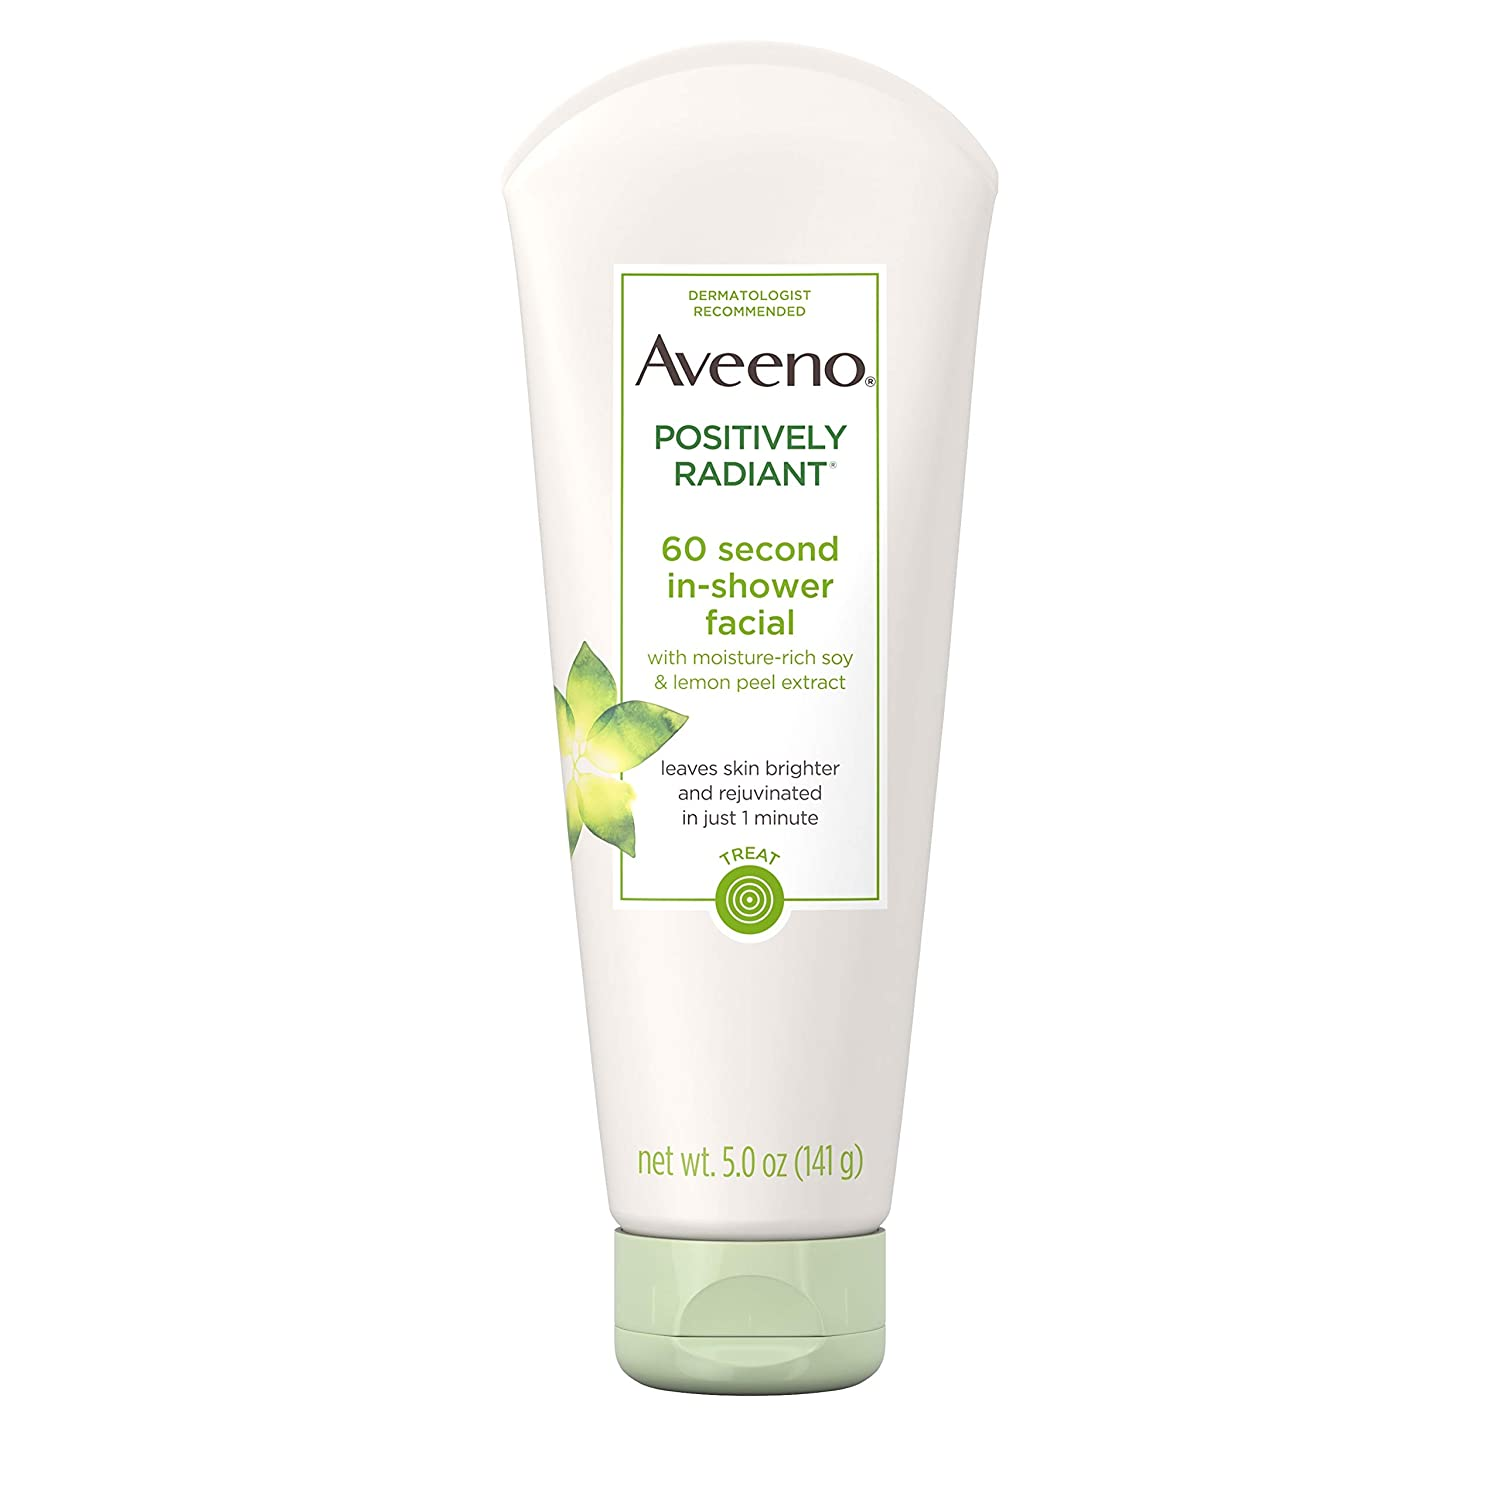 Aveeno Positively Radiant 60-Second In-Shower Facial, signs you need to exfoliate